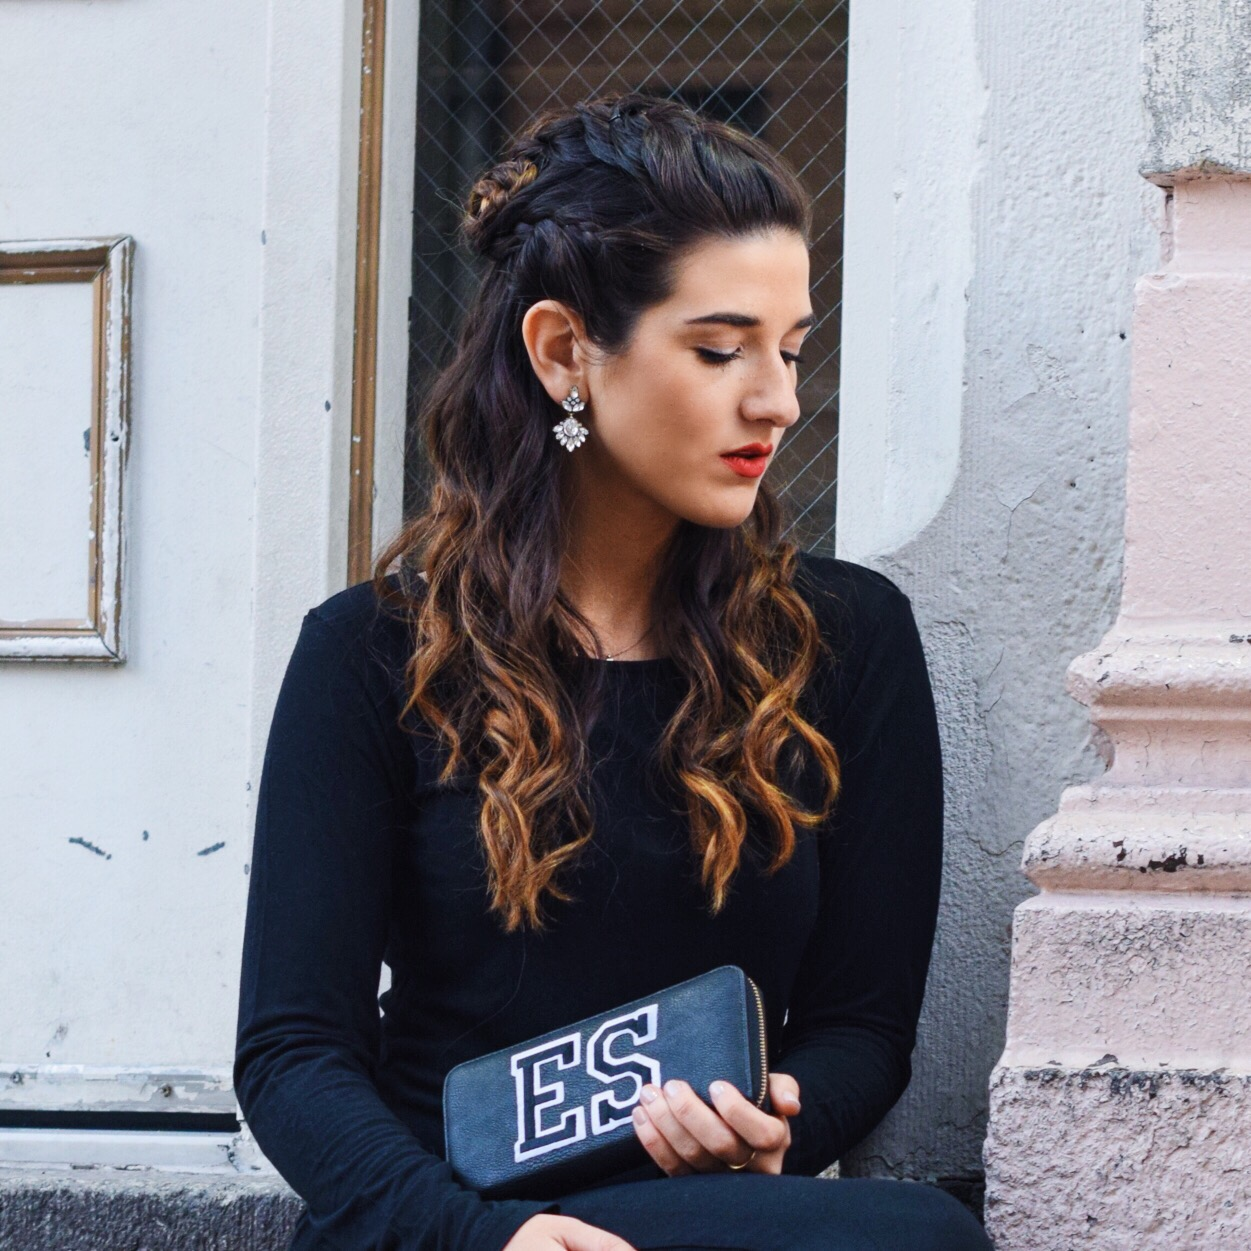 Jeweled Earrings Happiness Boutique Louboutins & Love Fashion Blog Esther Santer NYC Street Style Blogger Lifestyle Black Dress Slit Pretty Beautiful Photoshoot Hair Model Jewelry Rings Grey Coat Monogram Heels Zara H&M Outfit OOTD Fall Winter Look.jpg